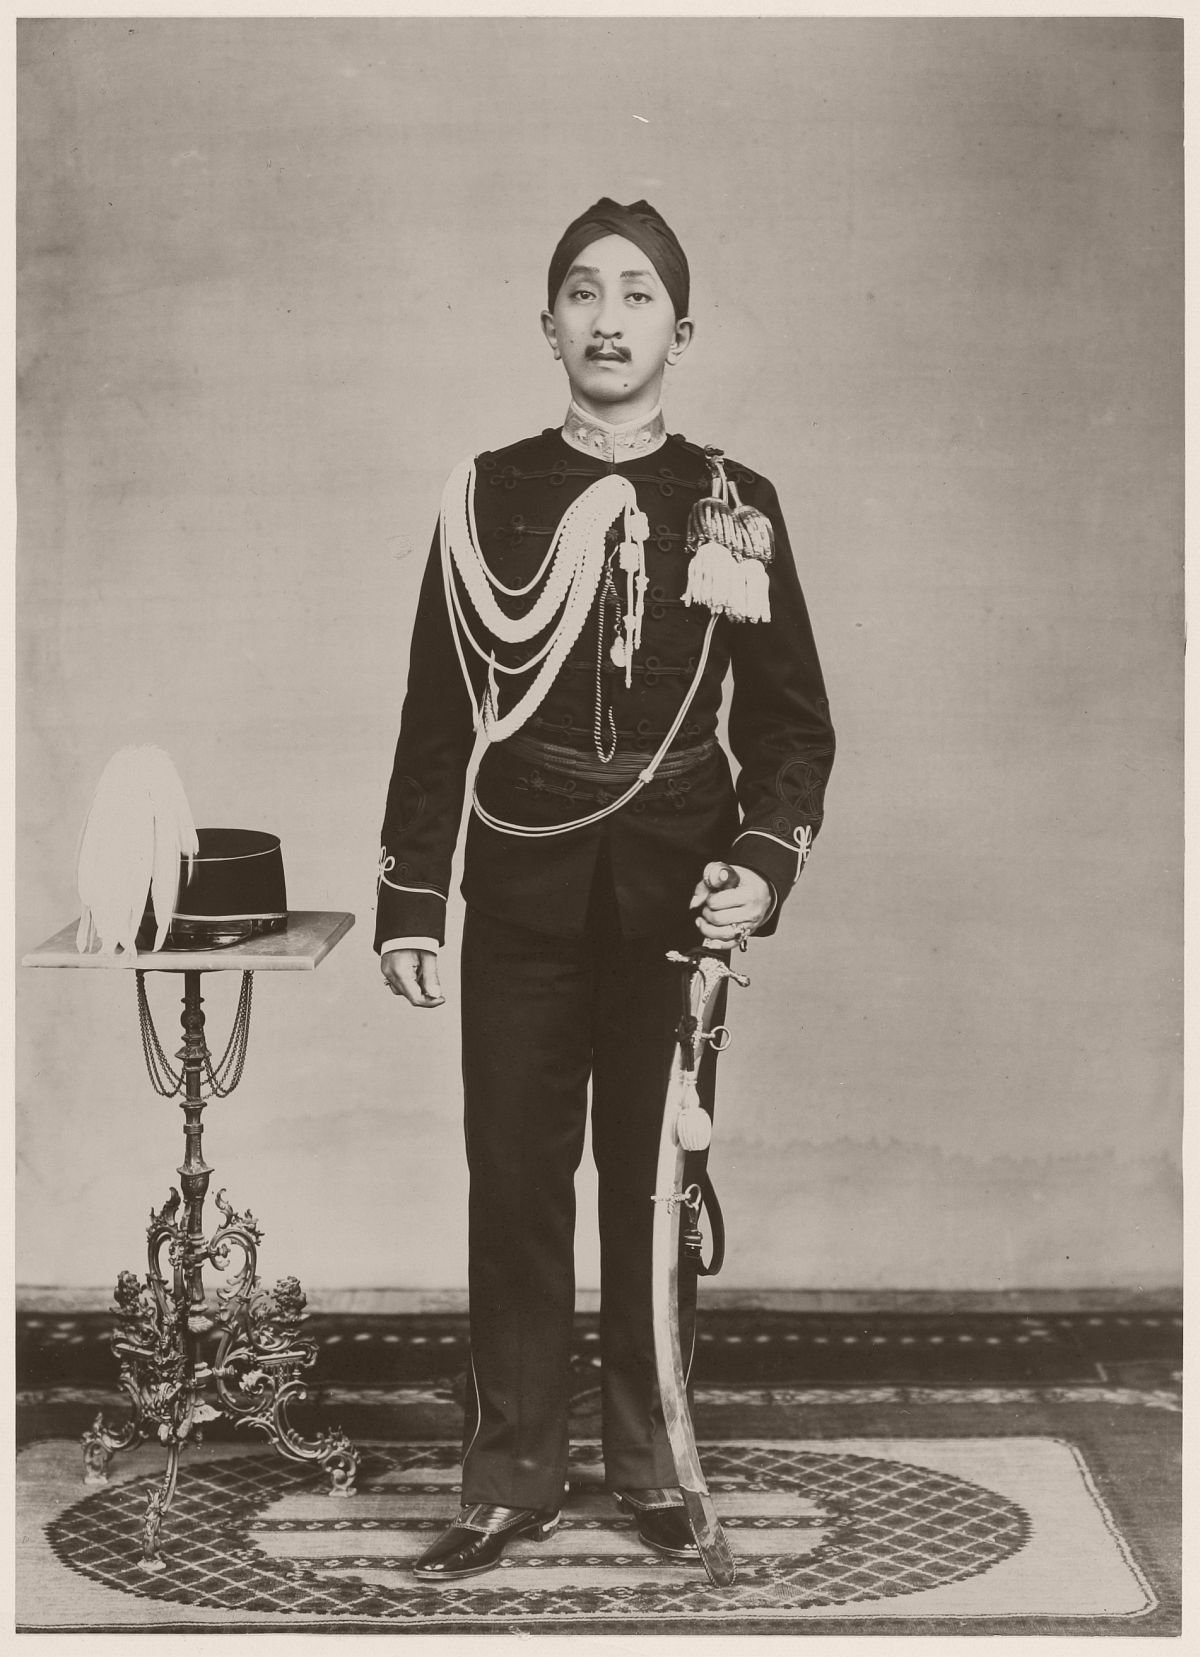 The crown prince of Yogyakarta, circa 1919